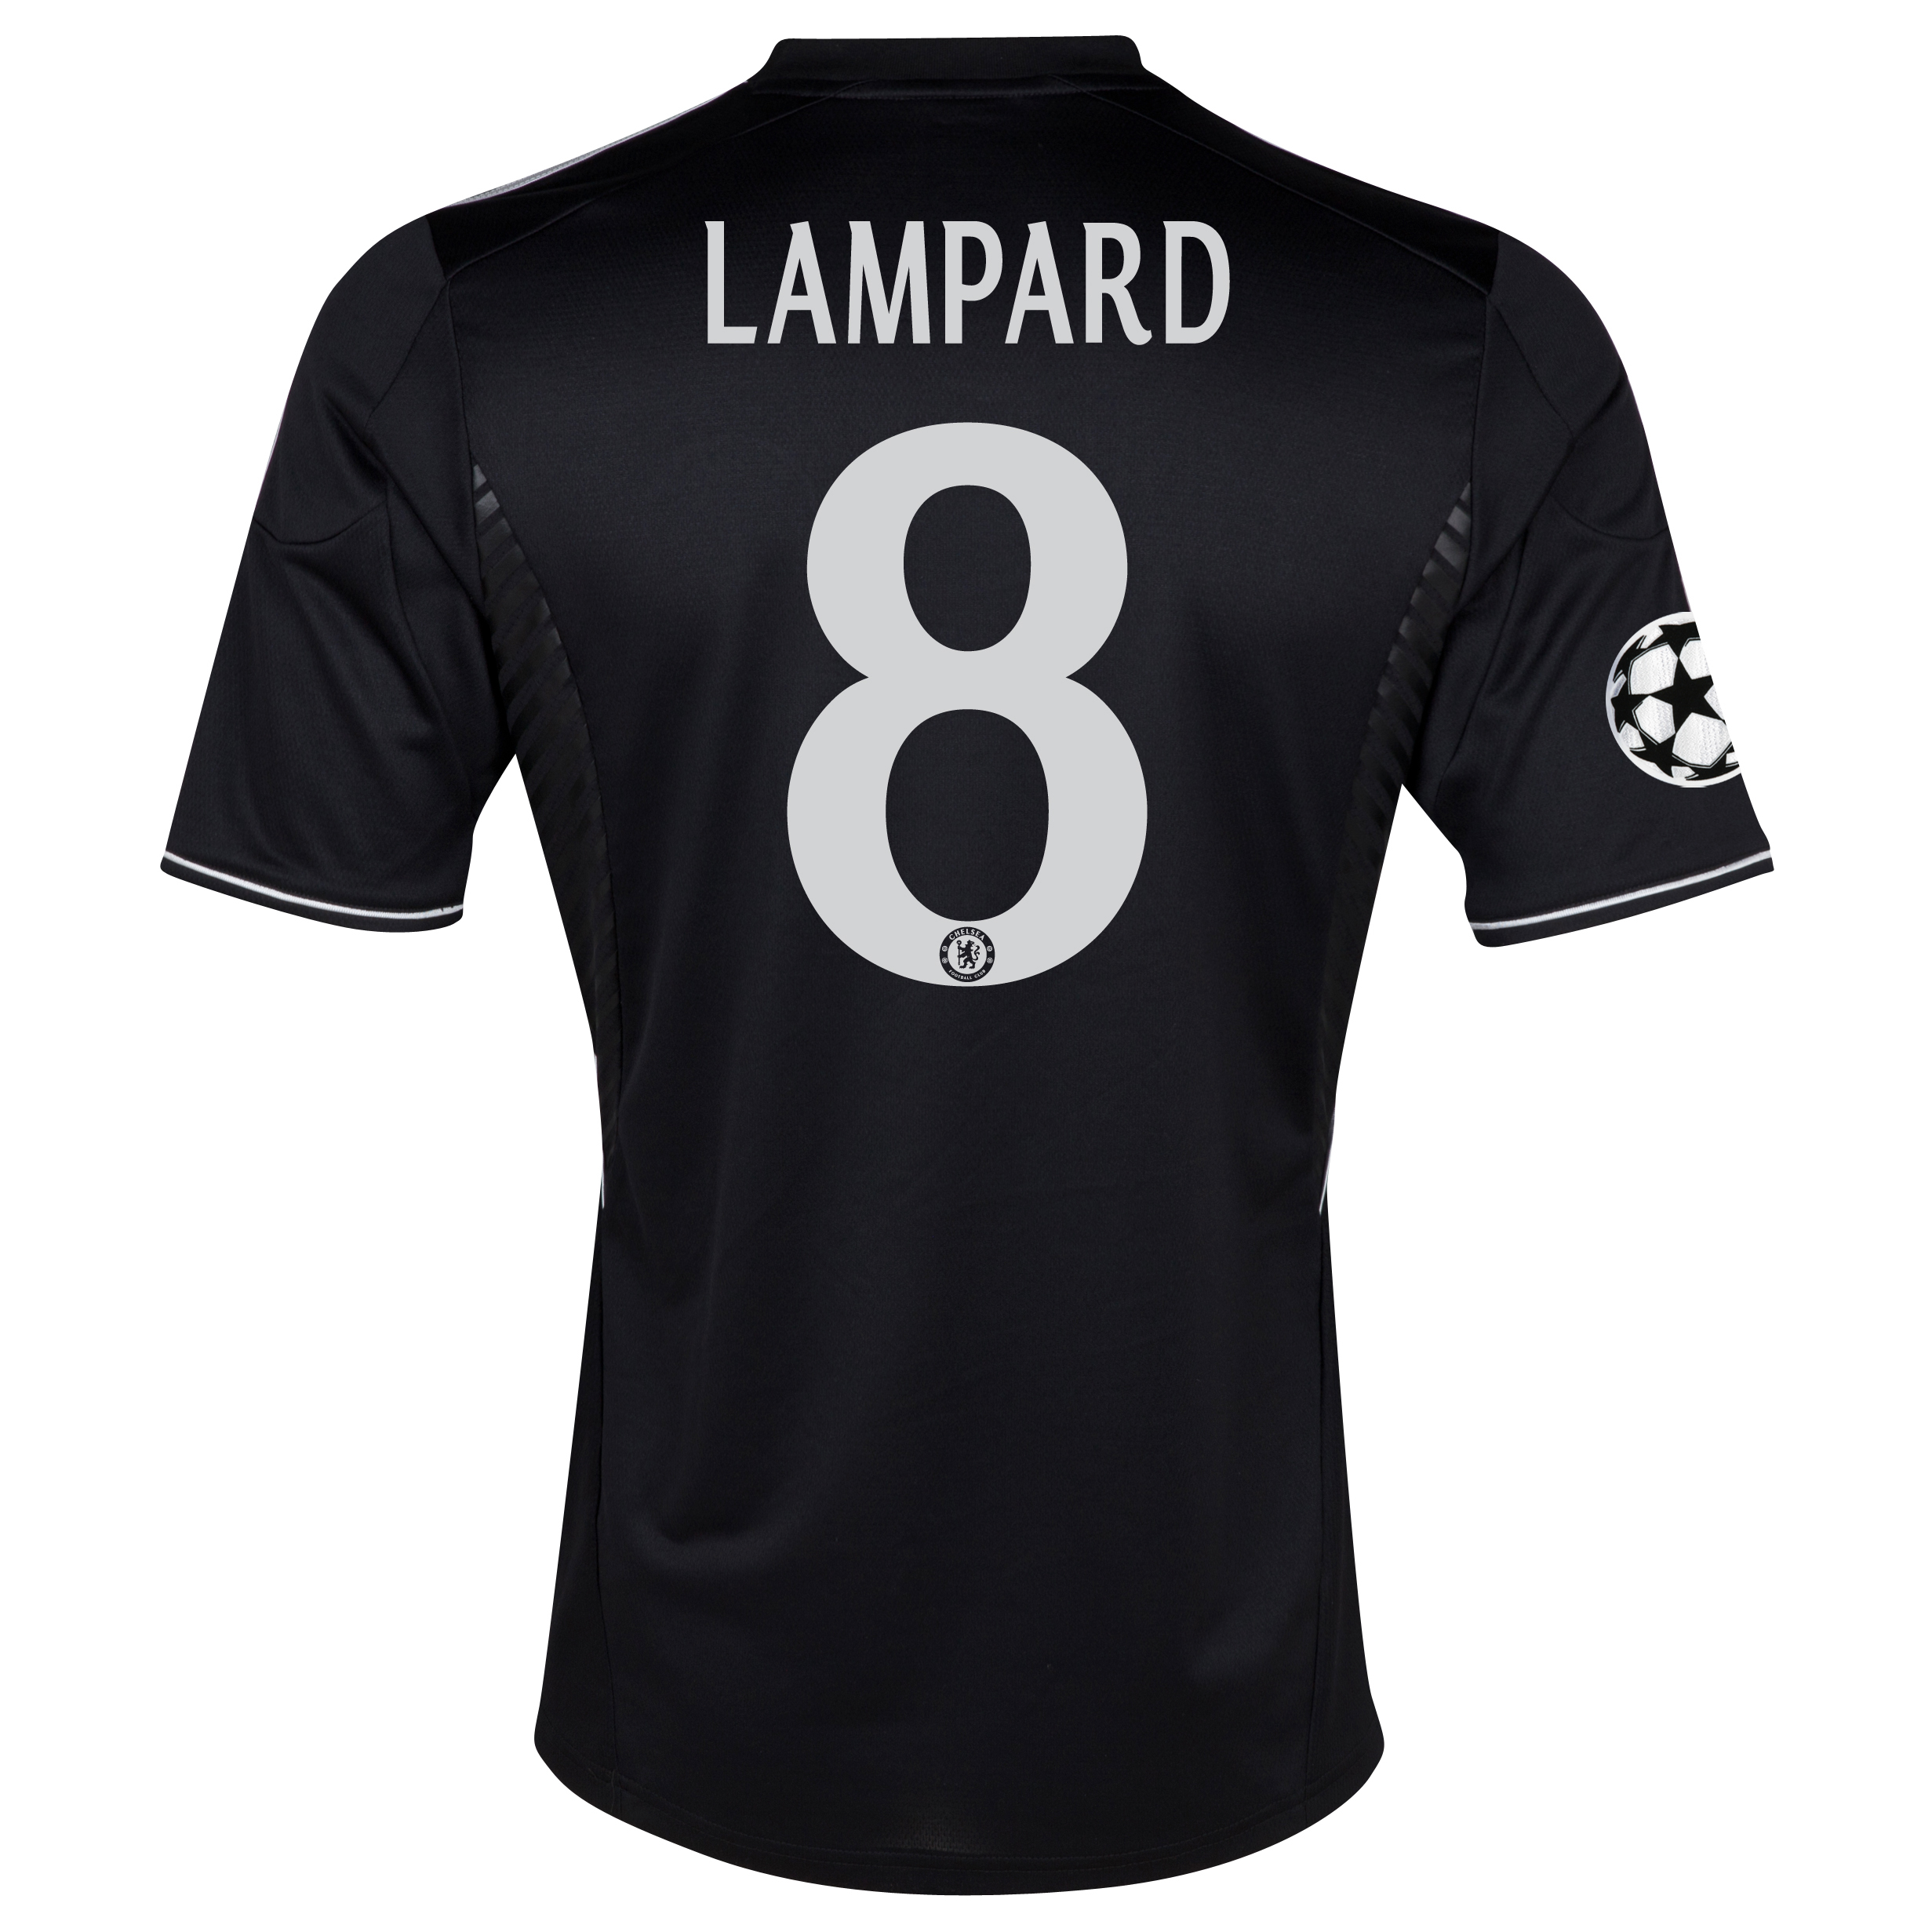 Chelsea UEFA Champions League Third Shirt 2013/14 with Lampard 8 printing